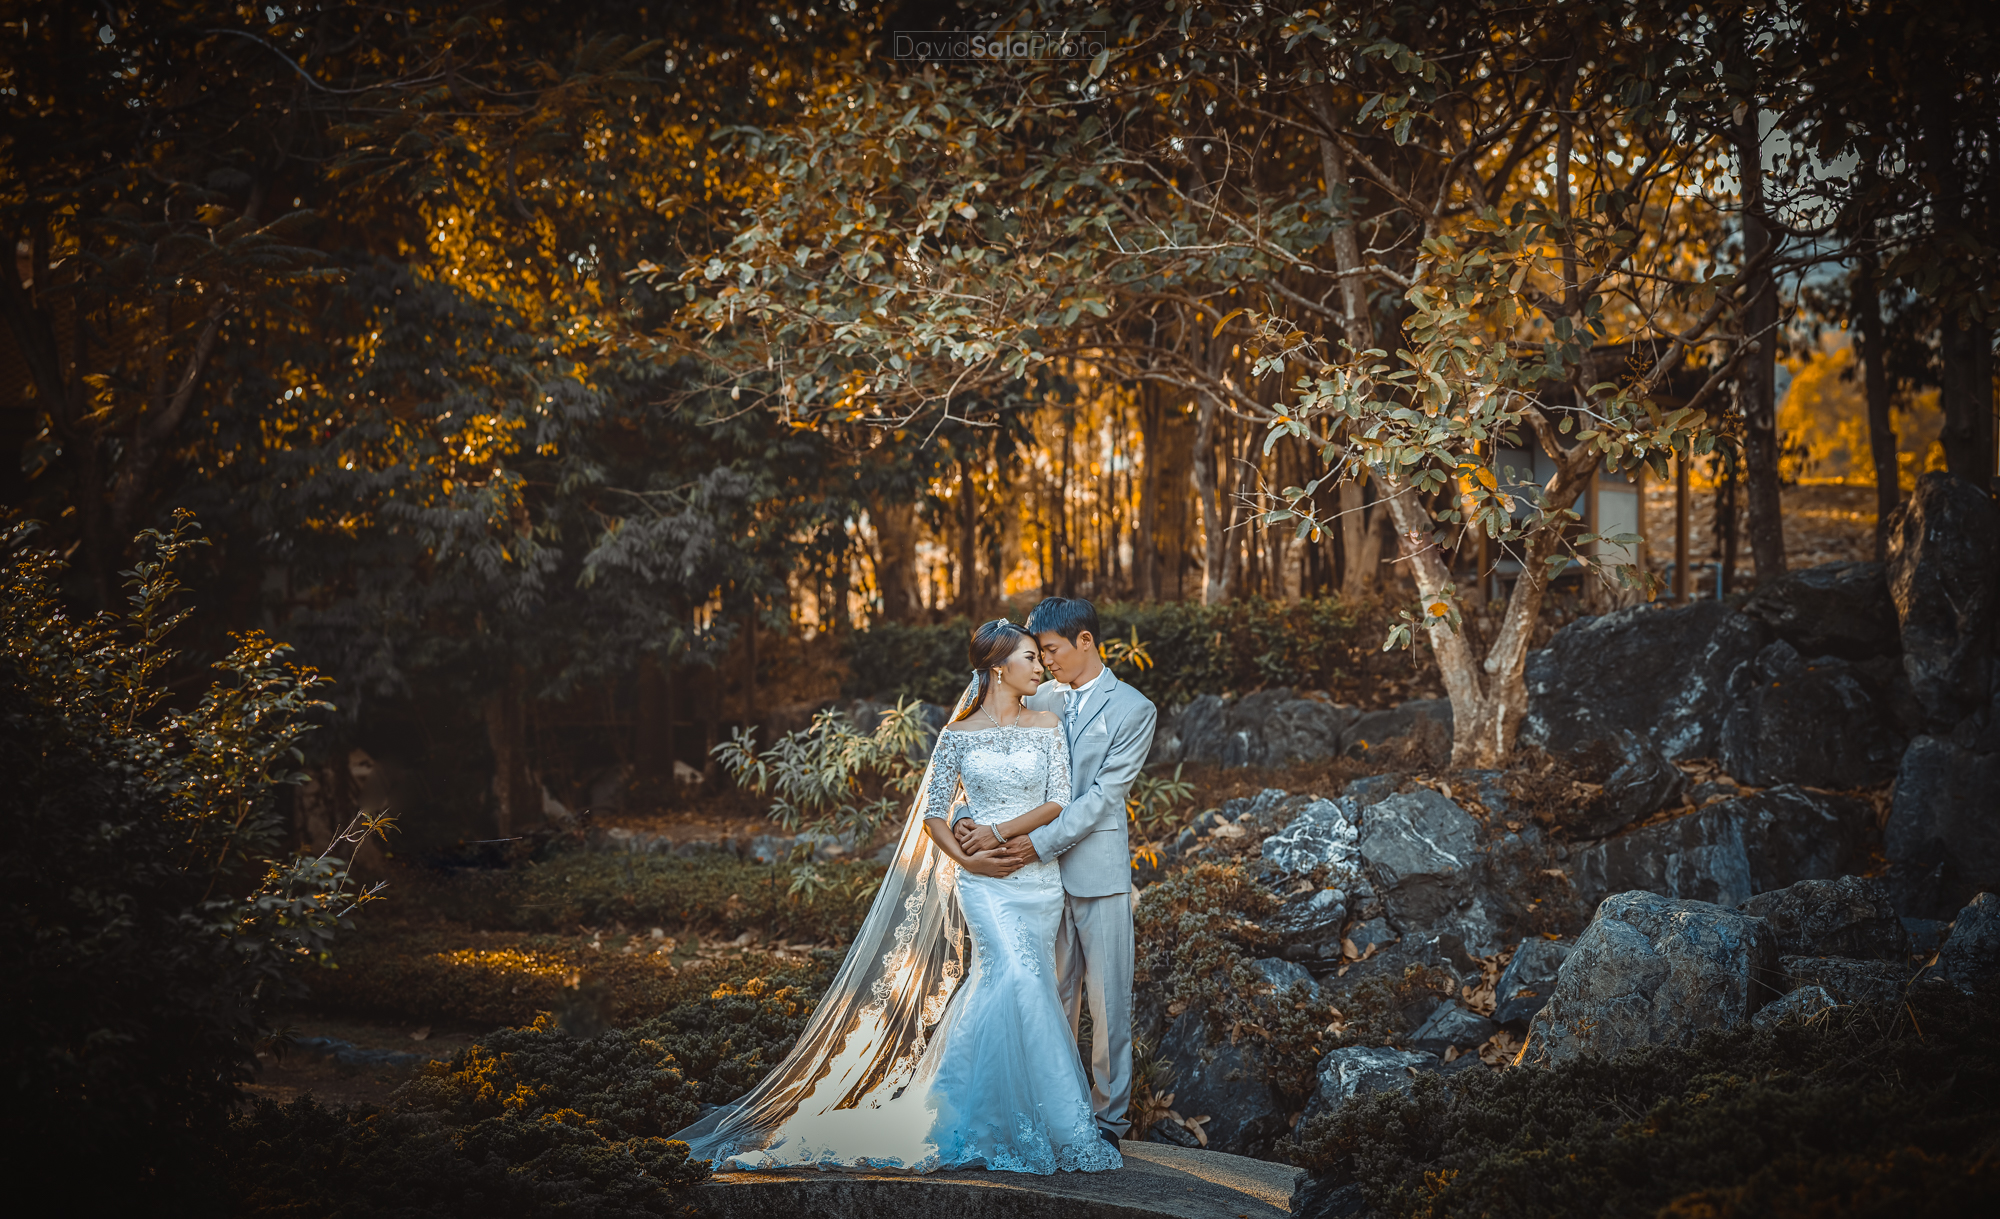 Pre Wedding Photo Shoot at Ratjapruek Gardens in Chiang Mai, Thailand.